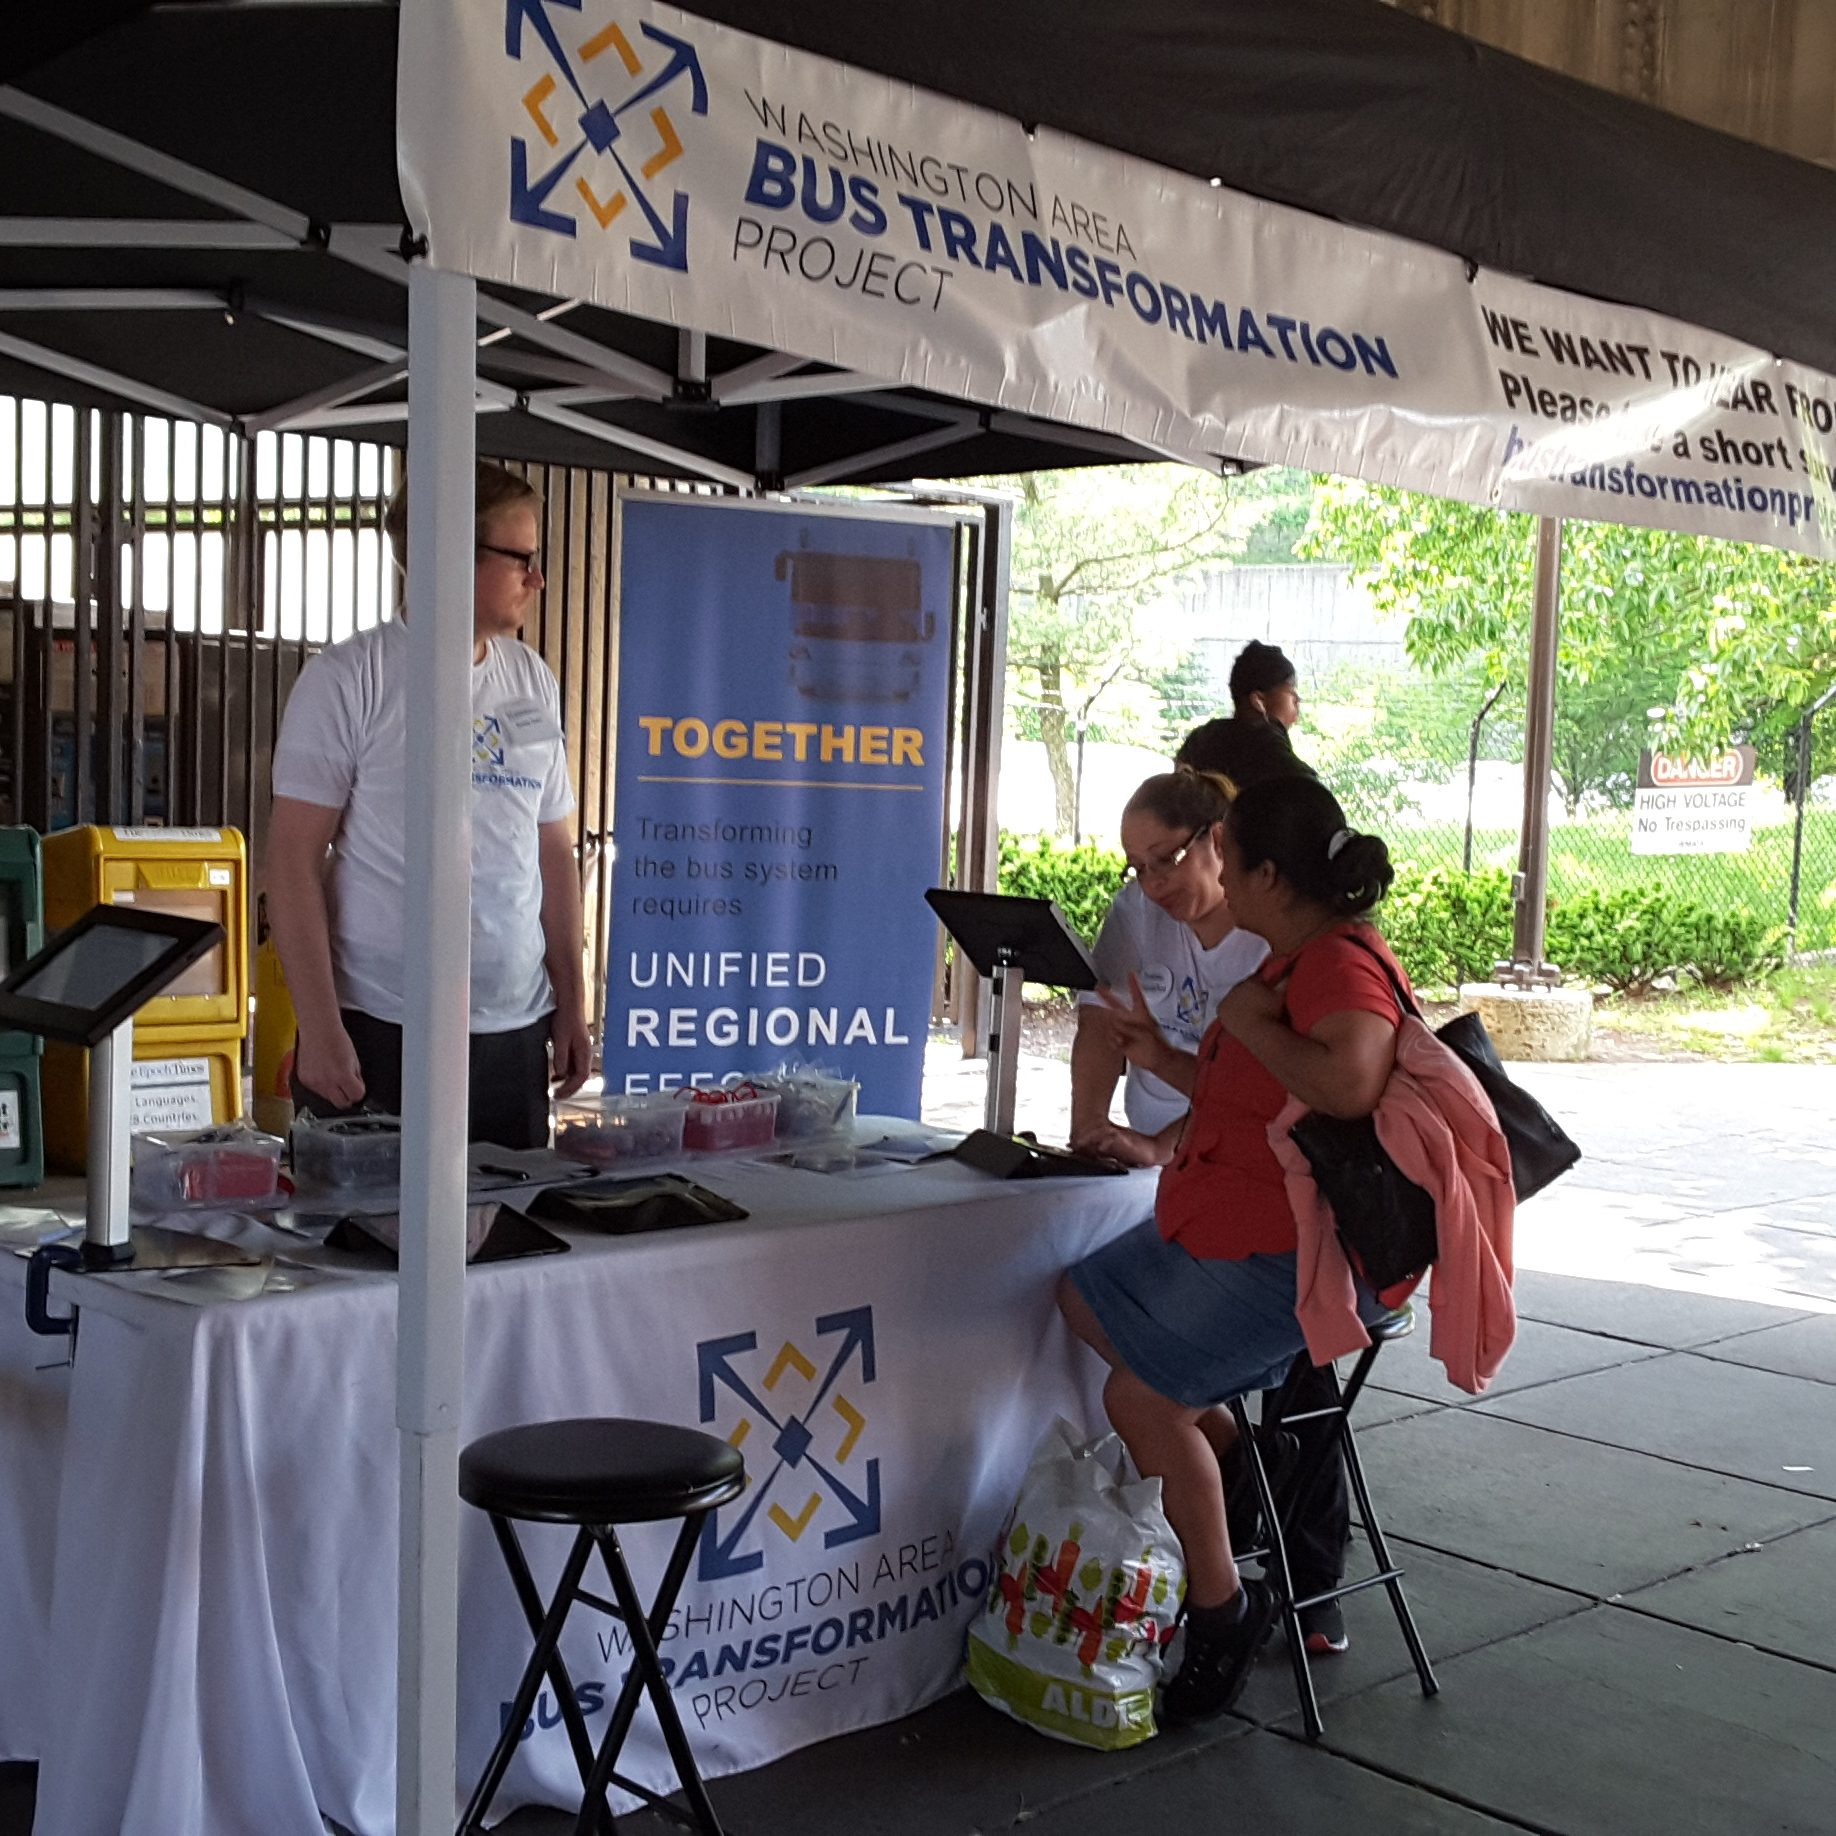 Event booth with people at the Fort Totten Metro Station